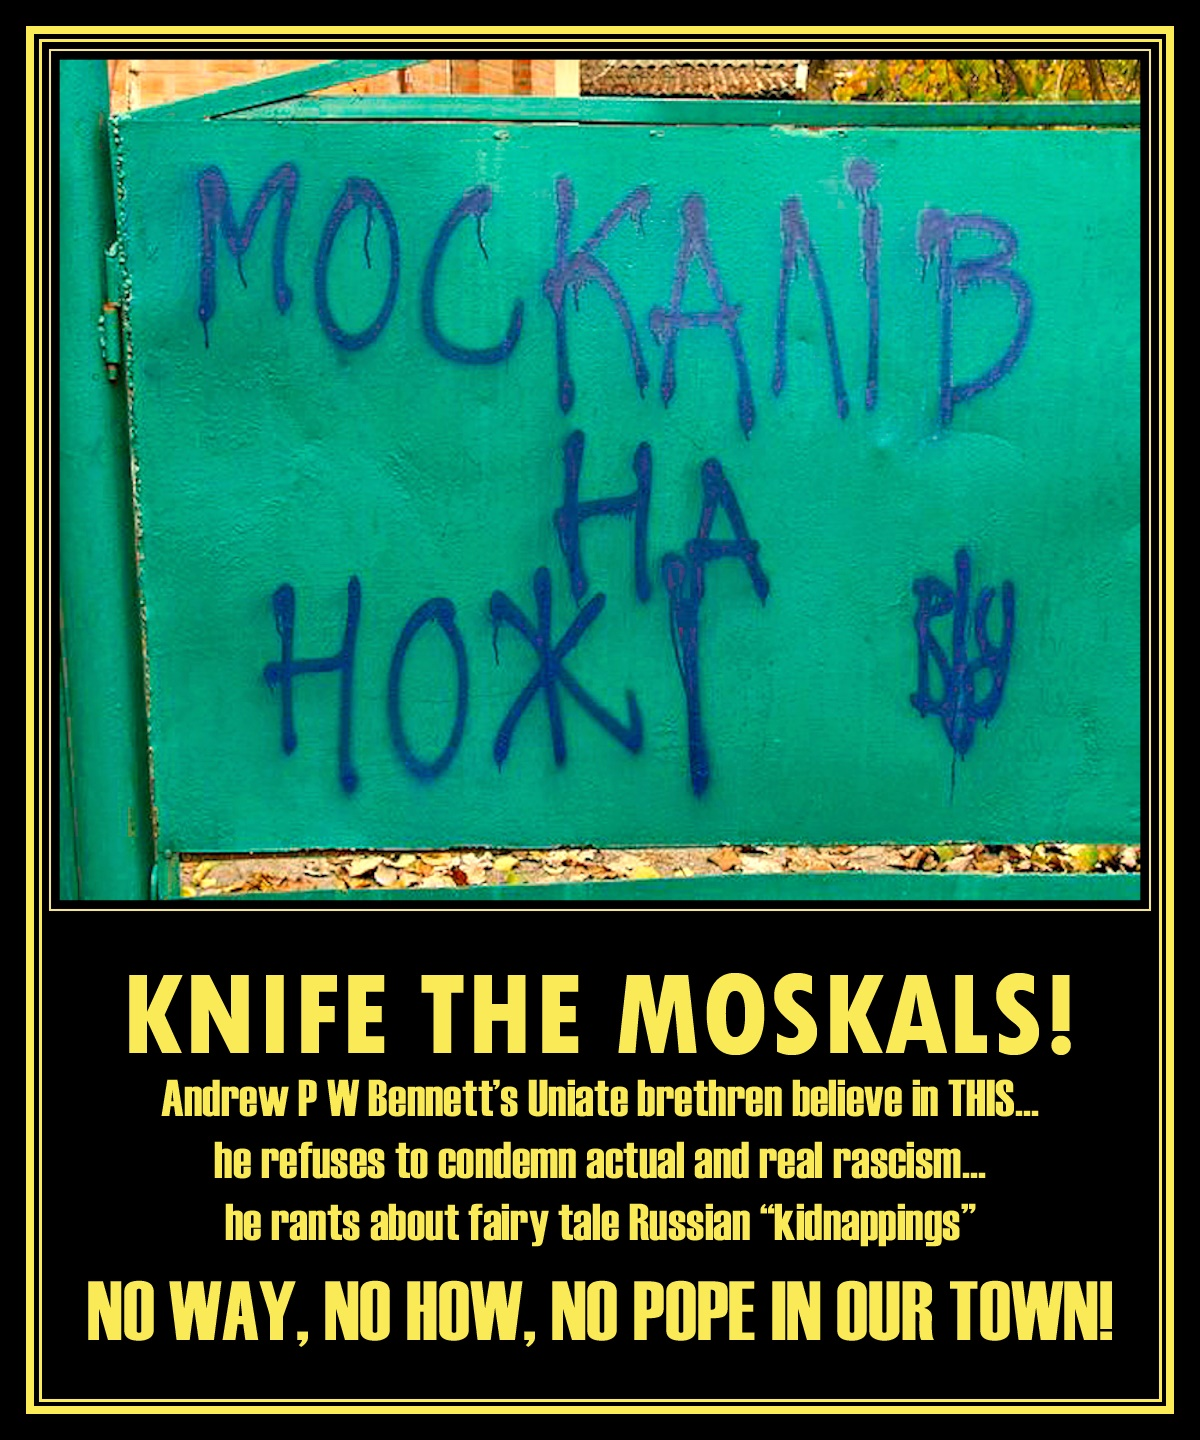 00 A Knife for the Moskals. 07.10.14